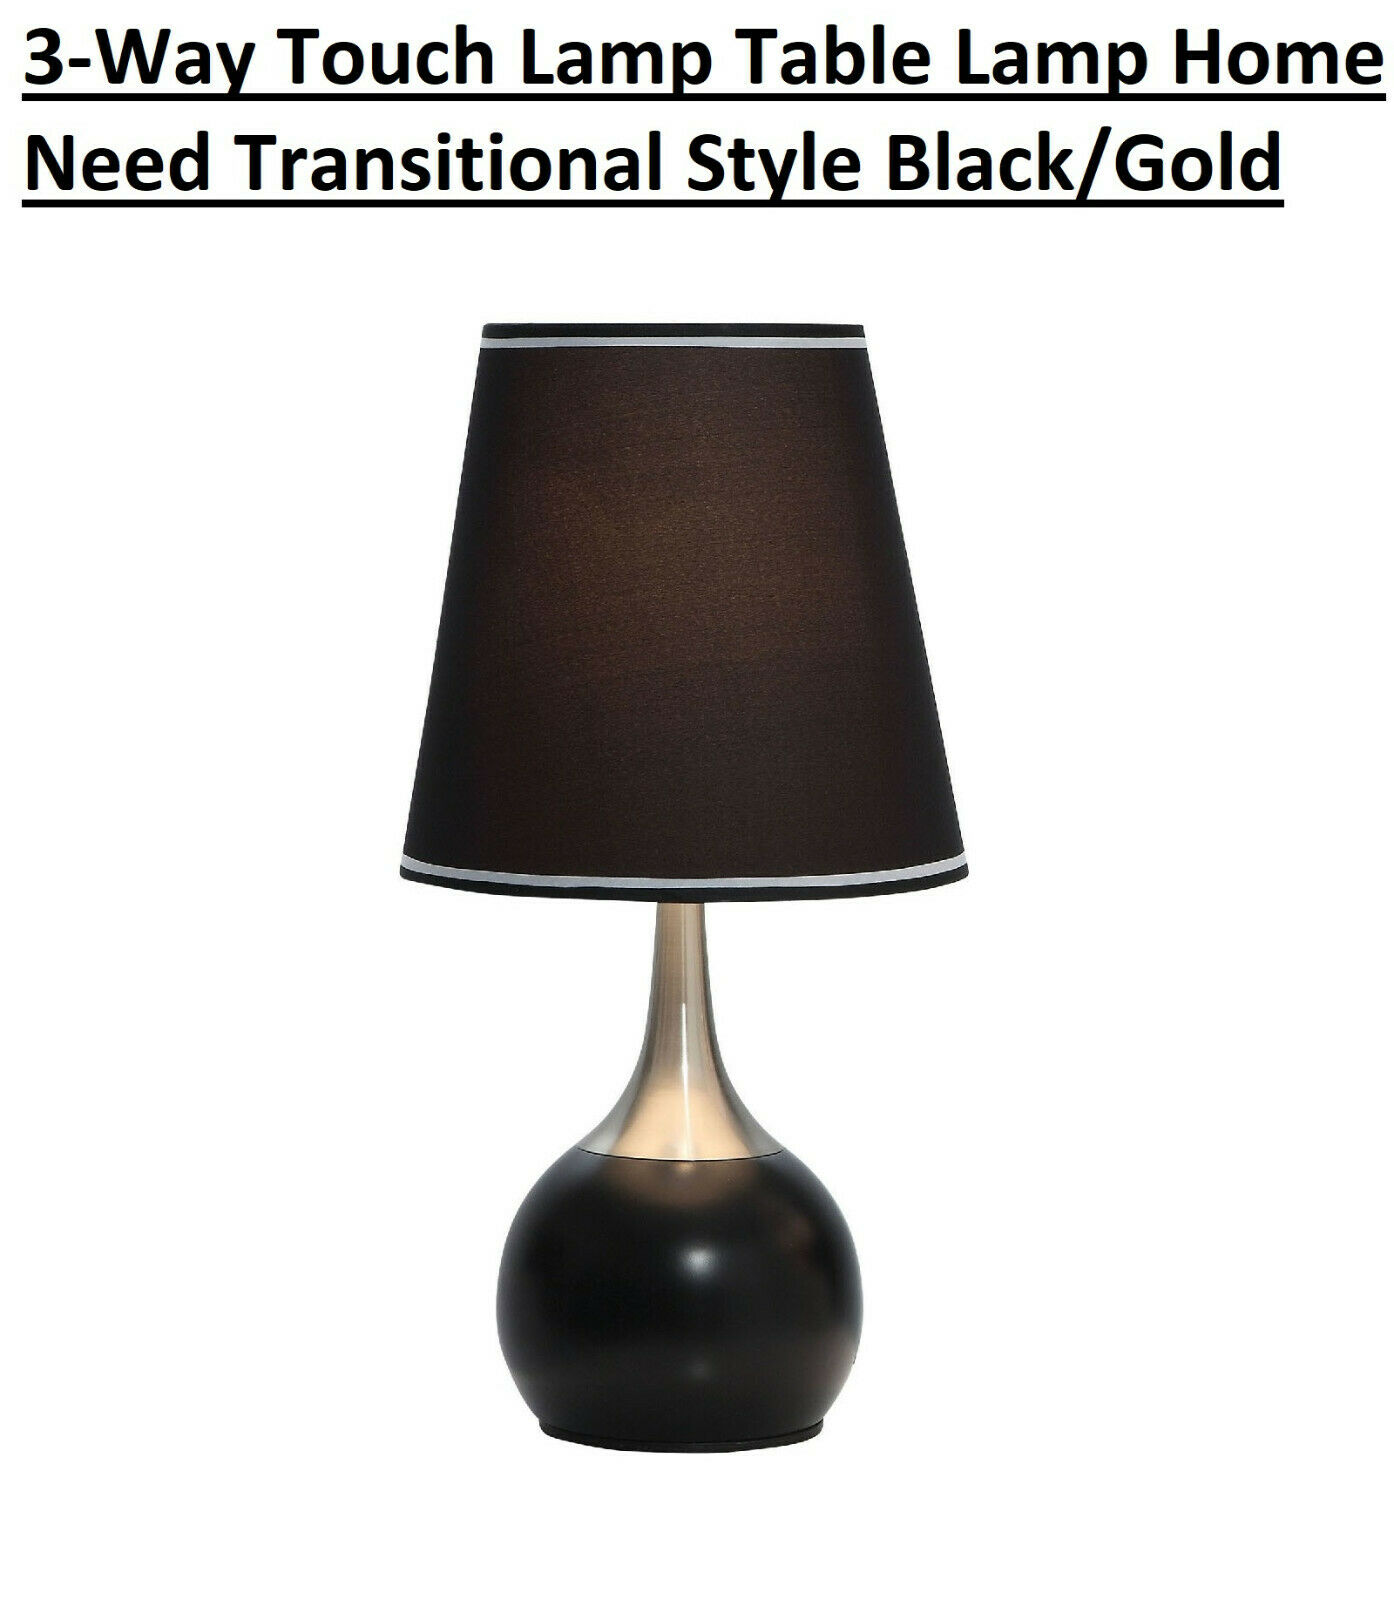 3-Way Touch Lamp Table Lamp Home Need Transitional Style